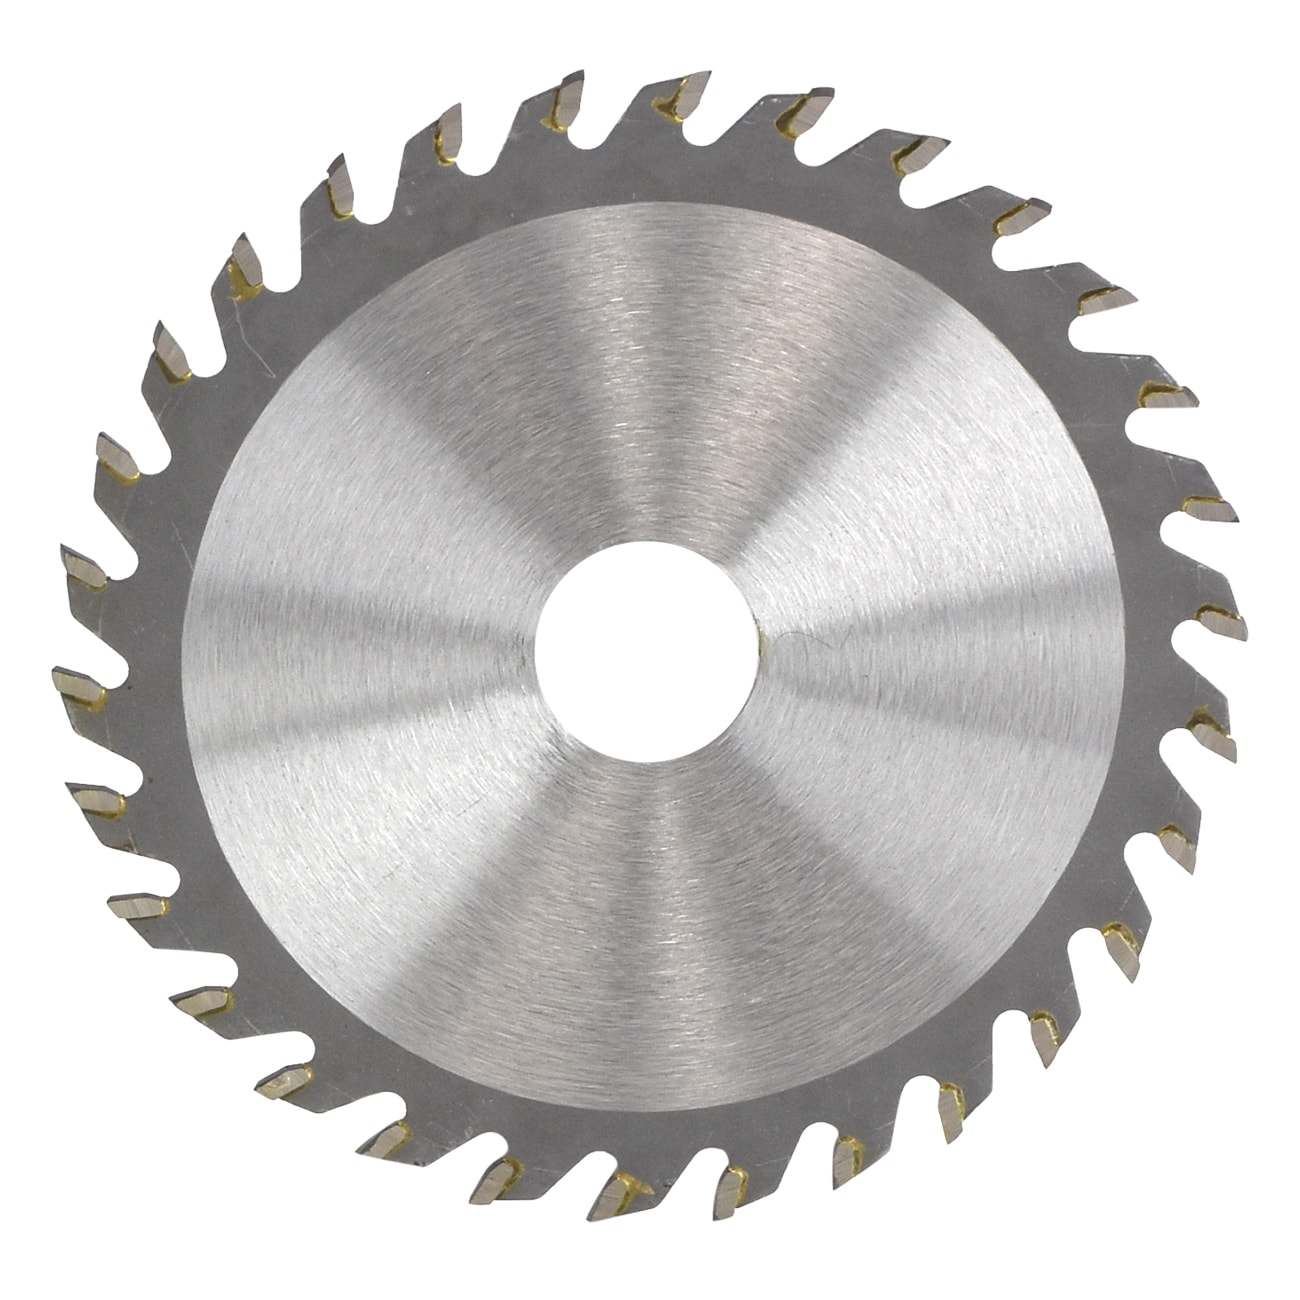 Table Saw Blades For Wood Carbide Tipped 4 3 8 Inch X 30 Teeth Ebay